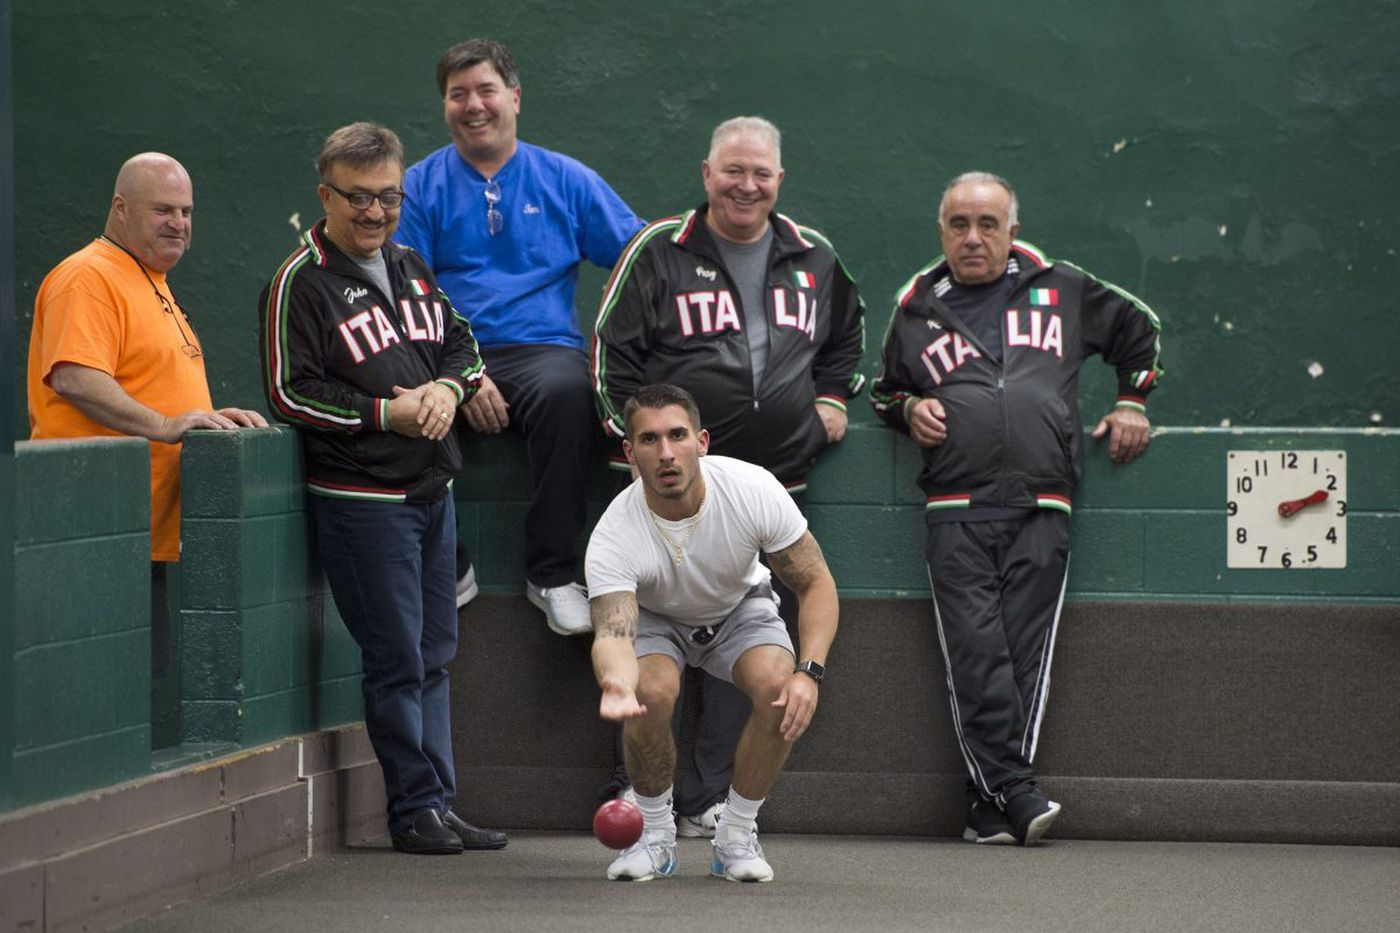 Rolling balls and busting chops: Regardless of class, bocce boys keep an ancient game current